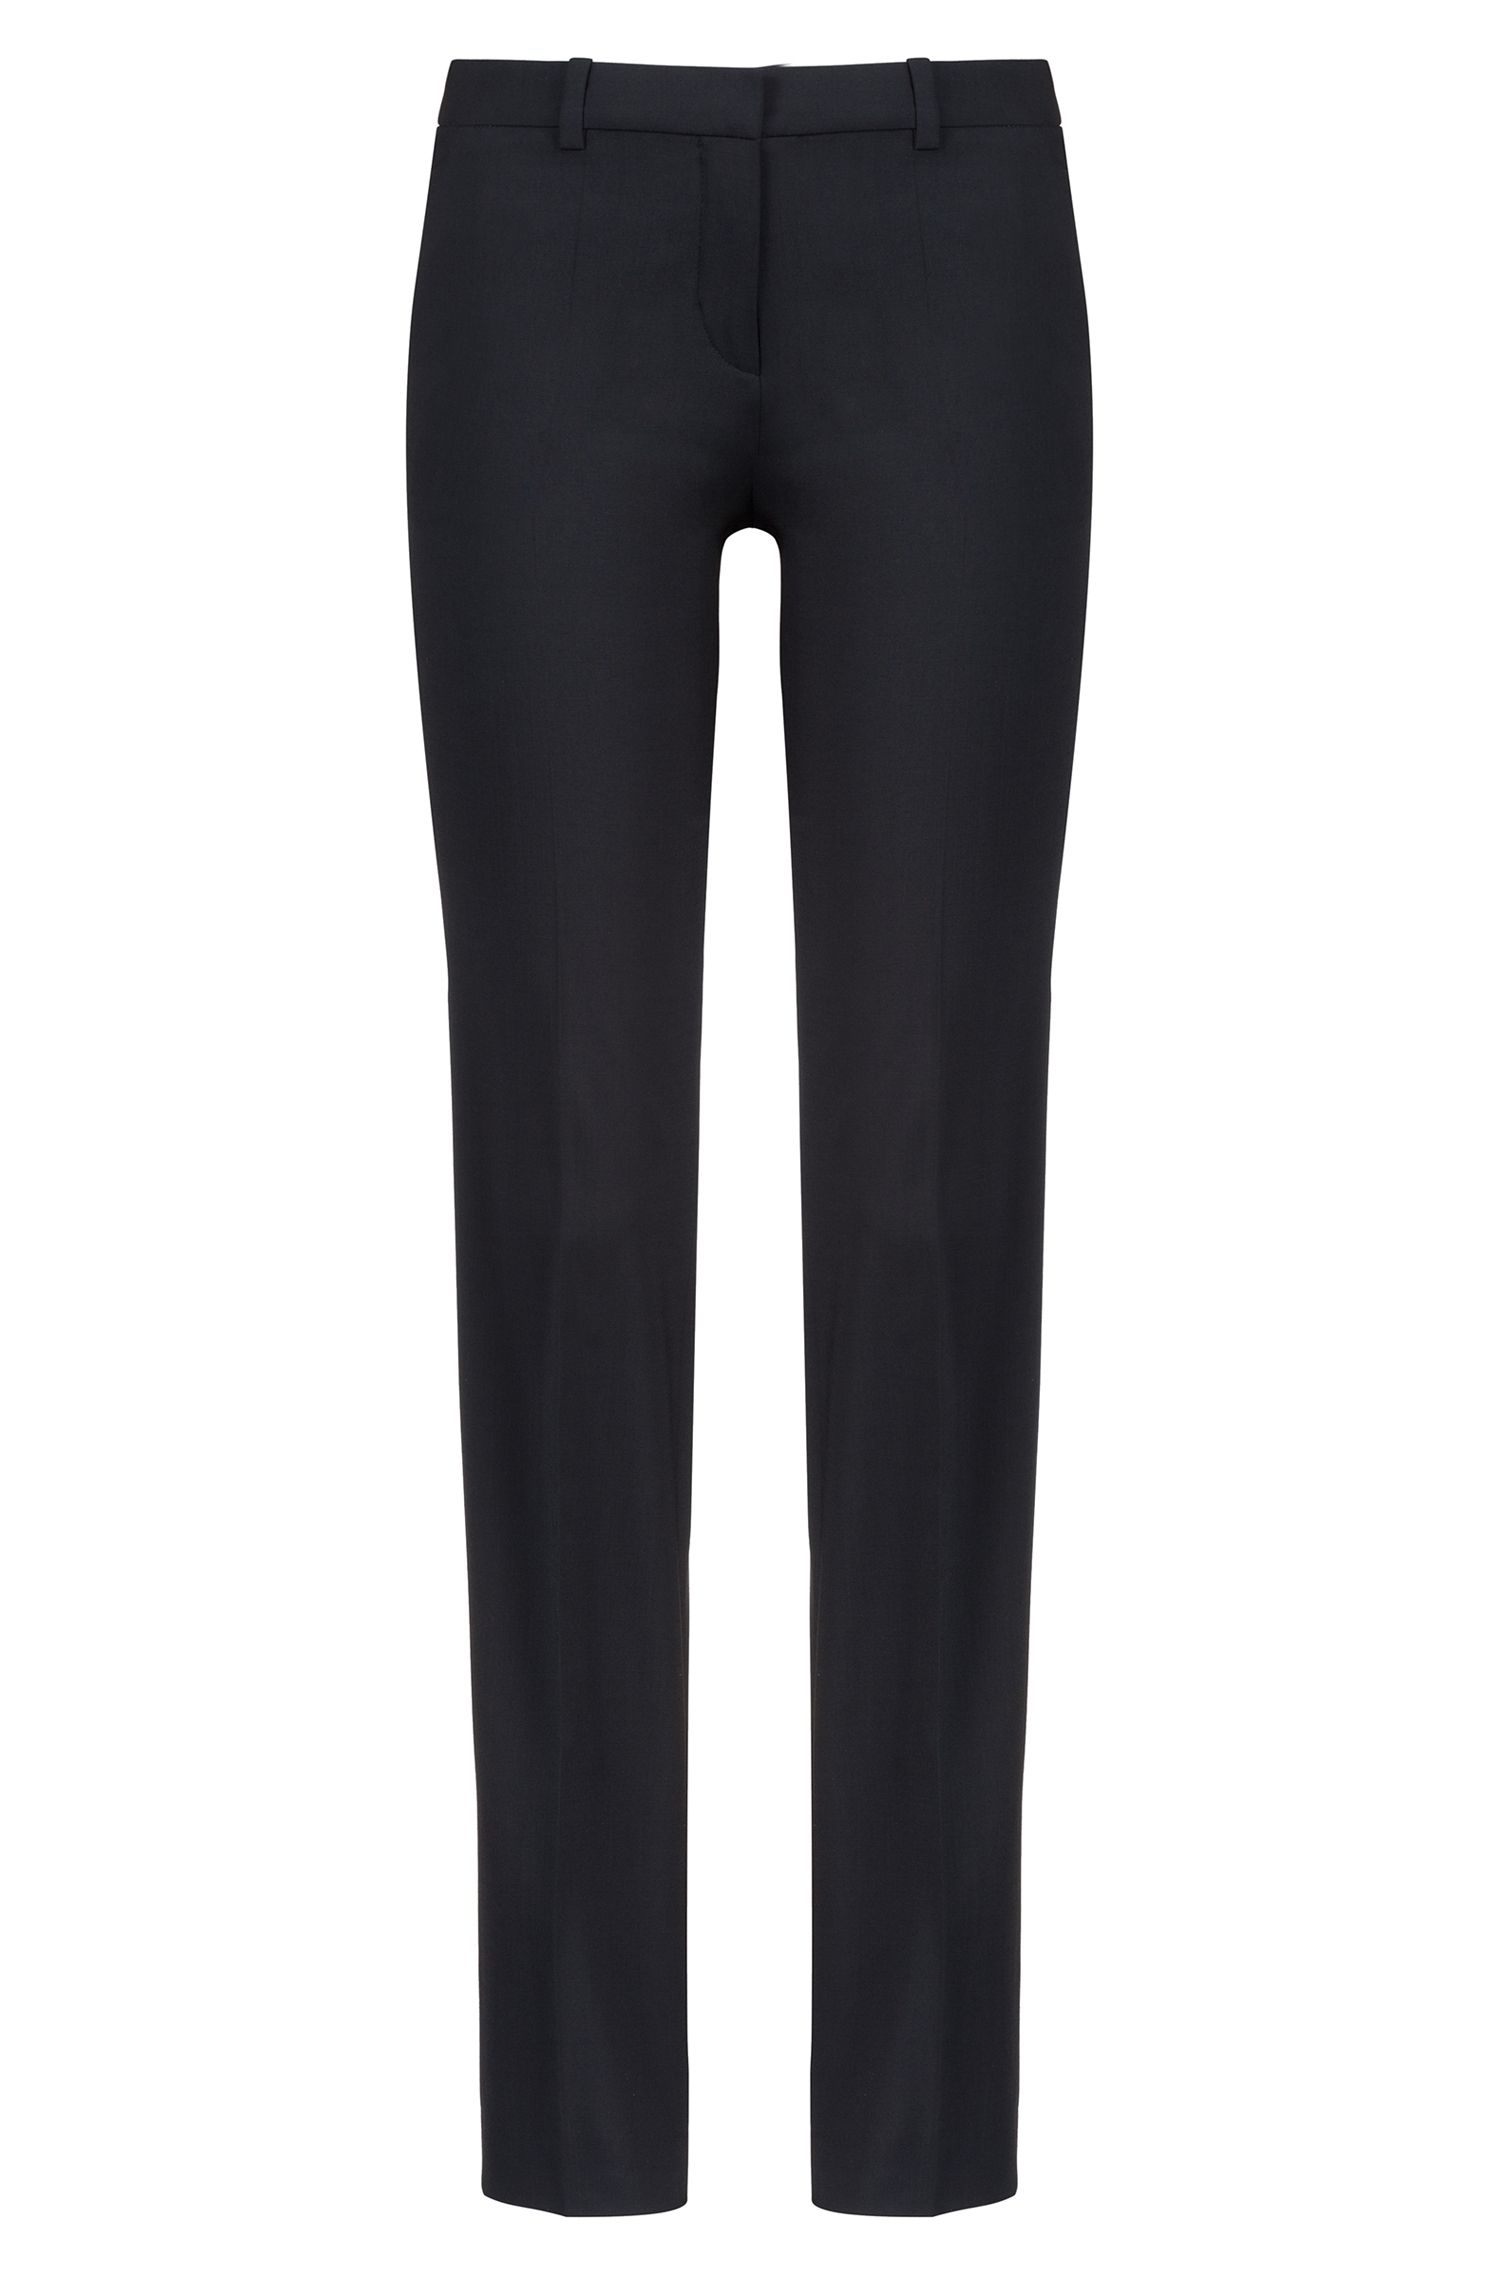 Pantalon HUGO Femme Regular Fit habillé, en laine vierge stretch, Noir